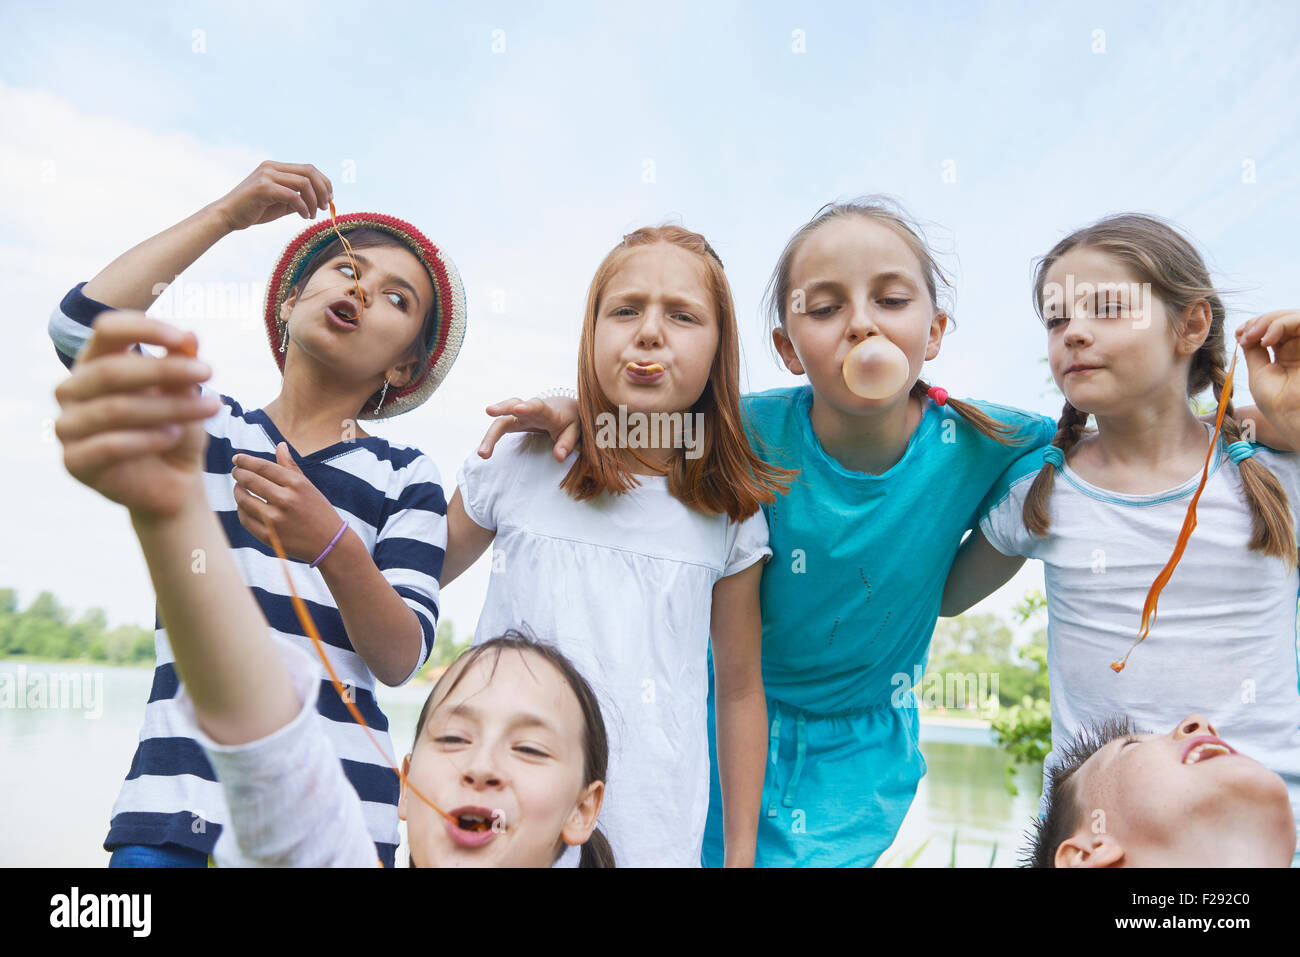 Group of friends playing with bubble gums, Bavaria, Germany - Stock Image